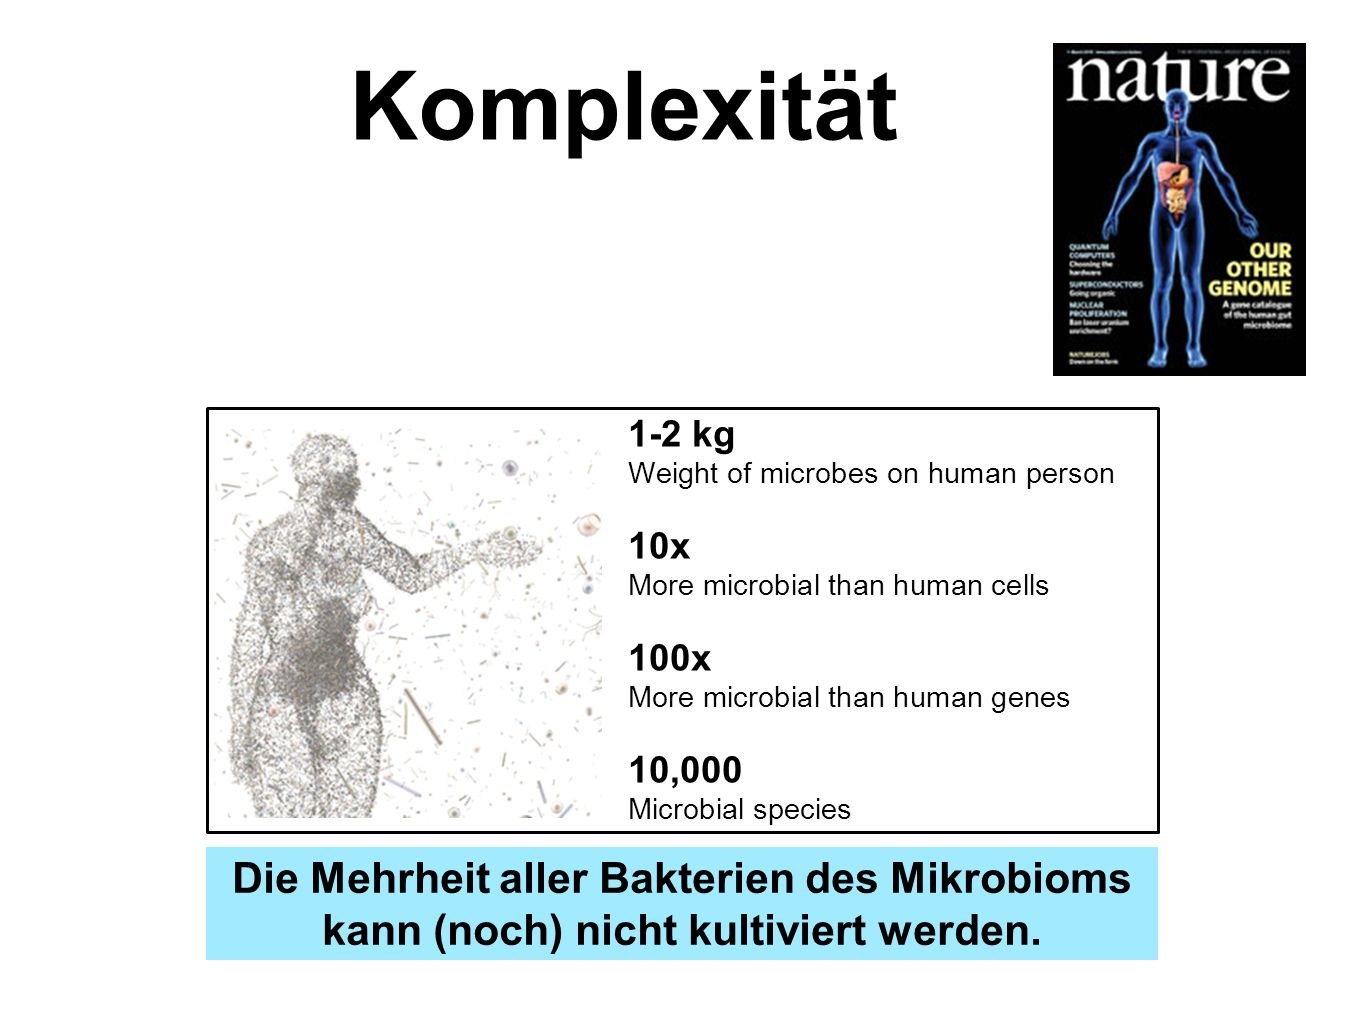 Komplexität 1-2 kg Weight of microbes on human person. 10x More microbial than human cells. 100x More microbial than human genes.